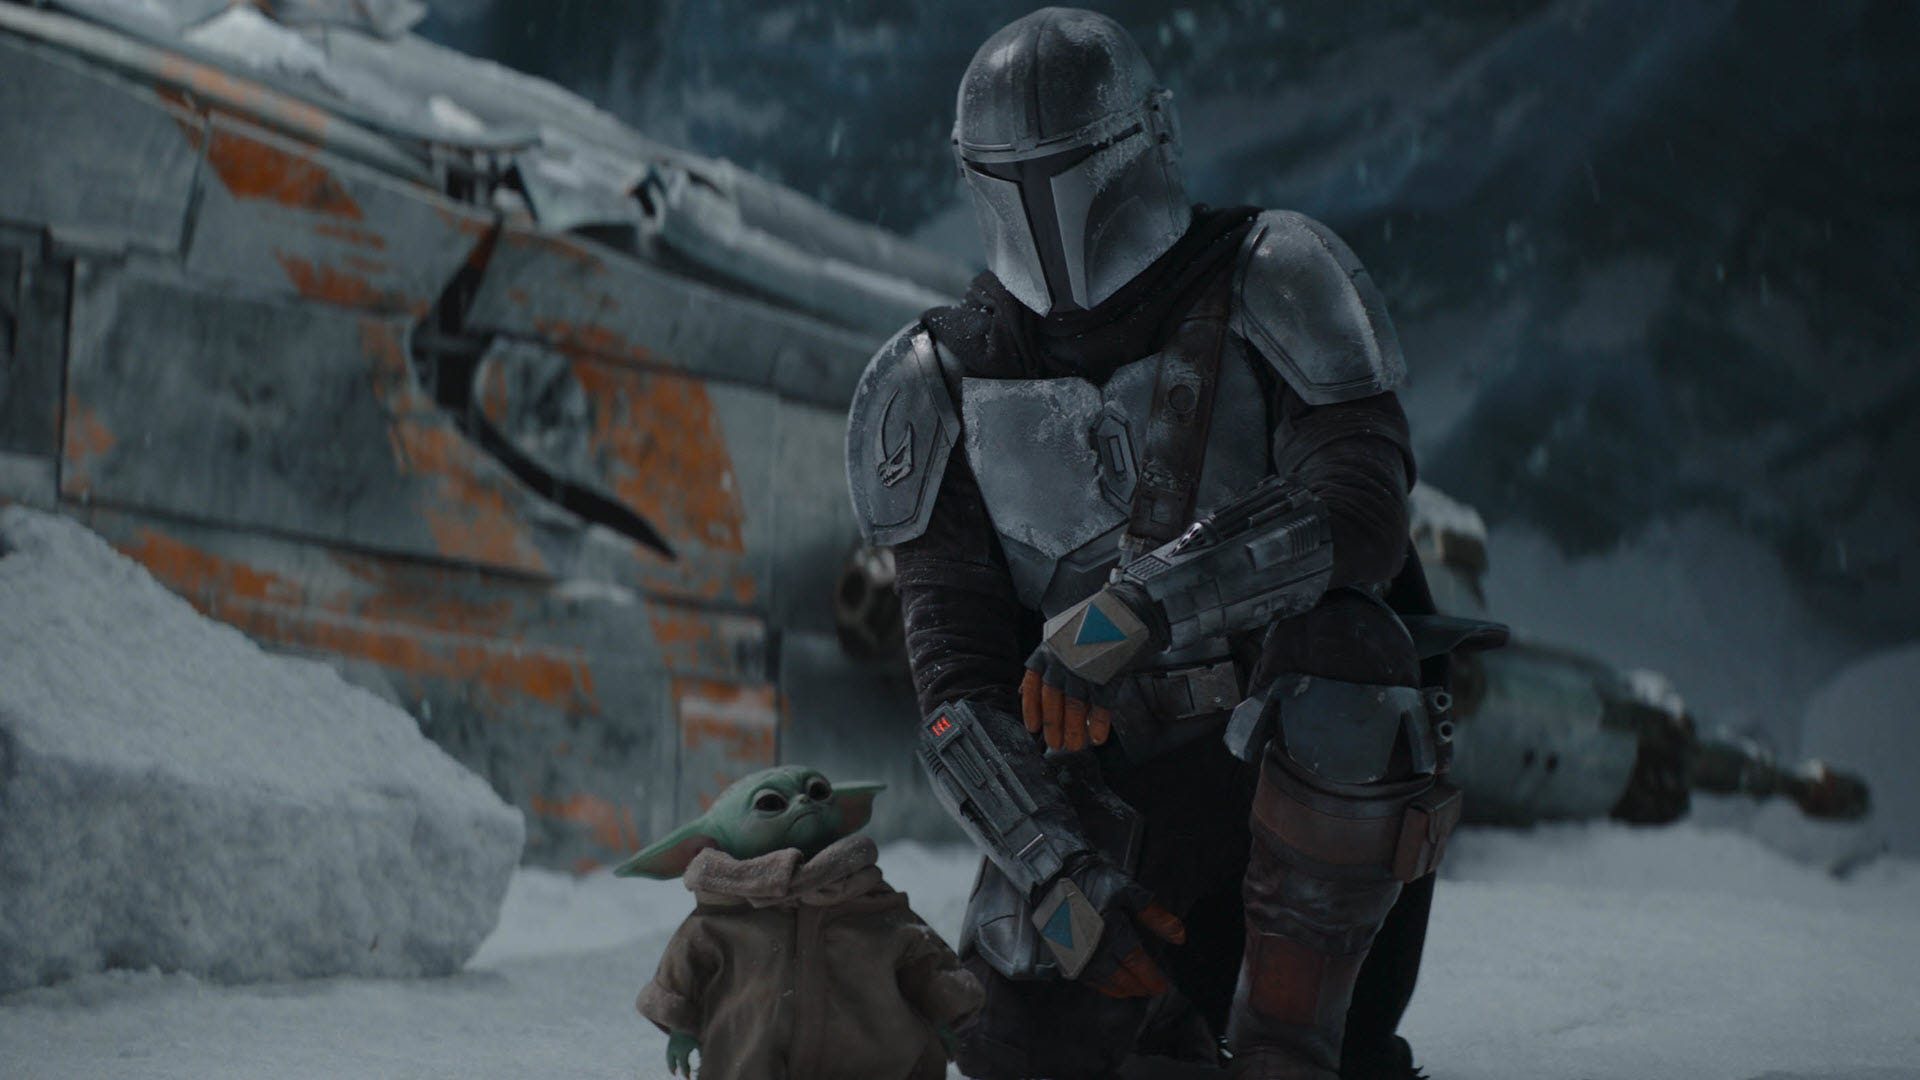 The Mandalorian and the Child on a frozen world.